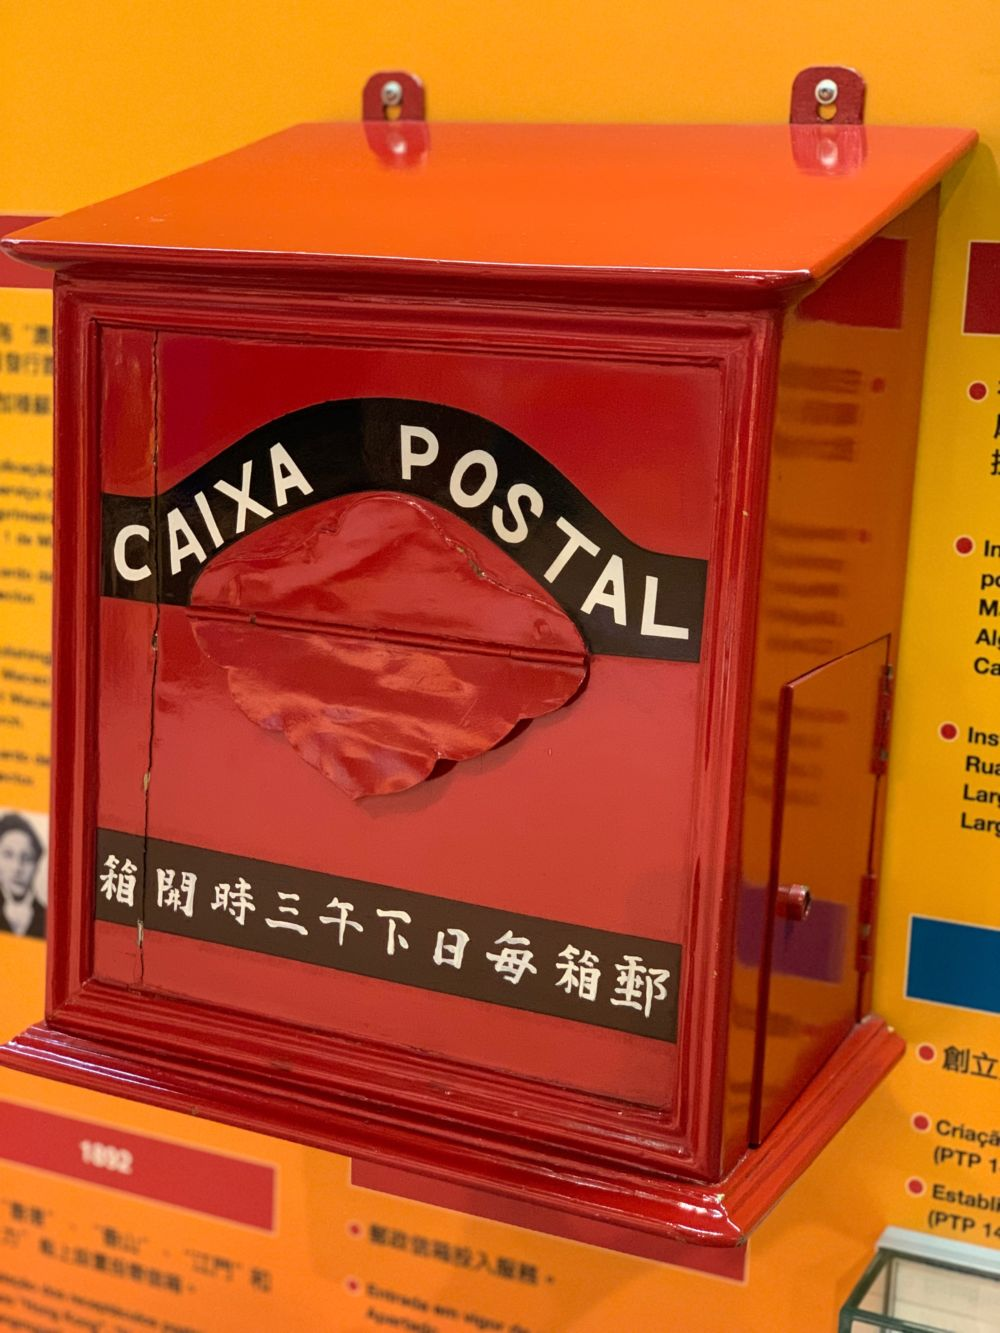 Macau Post postal box macau circa 1880